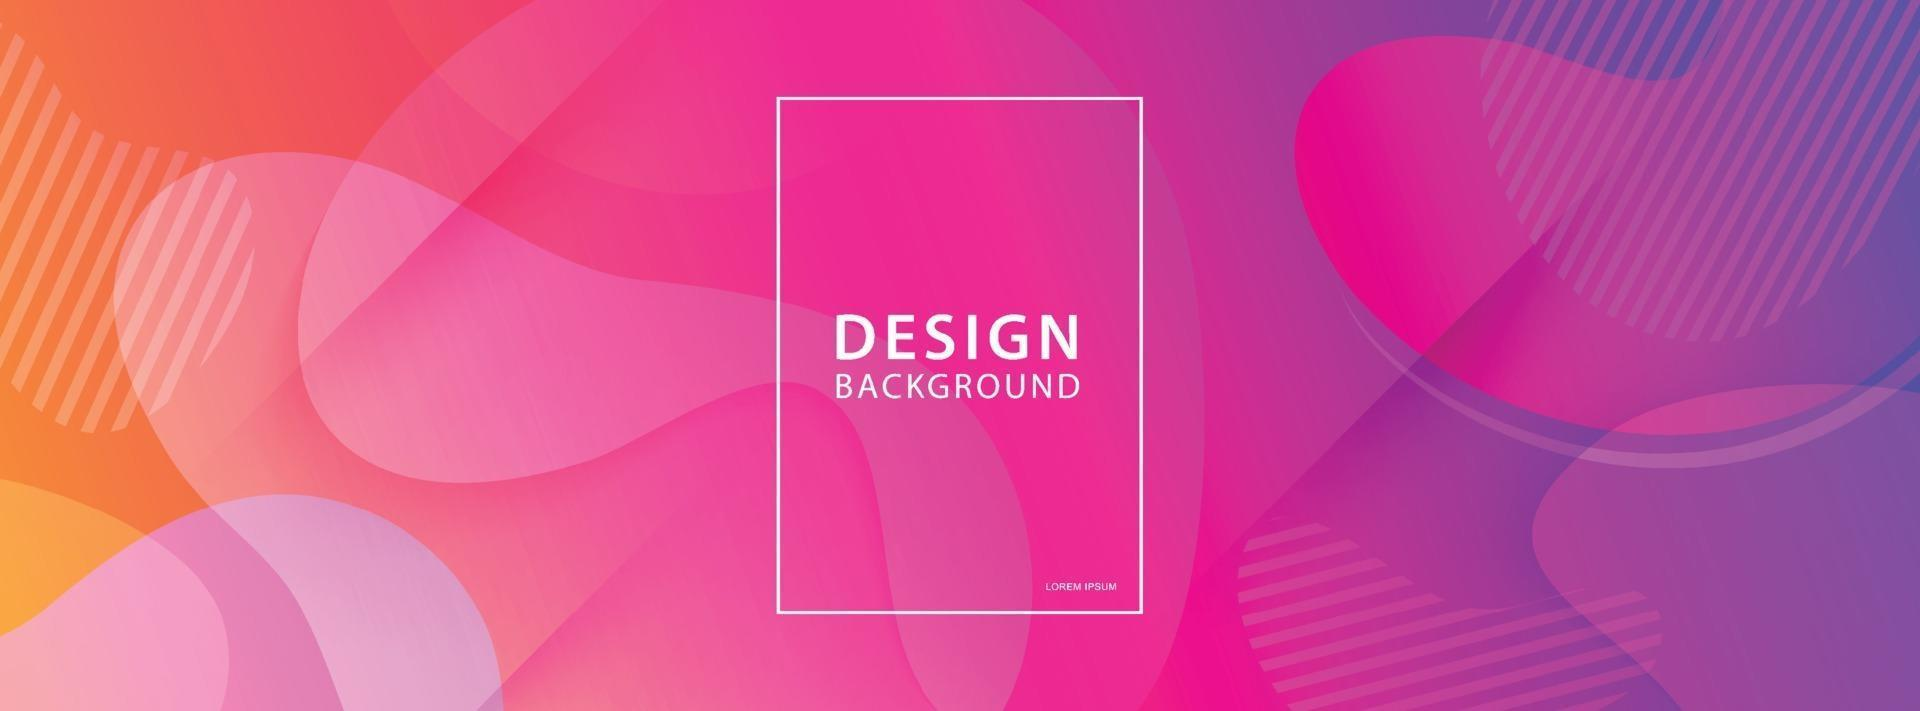 Fluid shape banner design background. Liquid geometric gradient template. vector